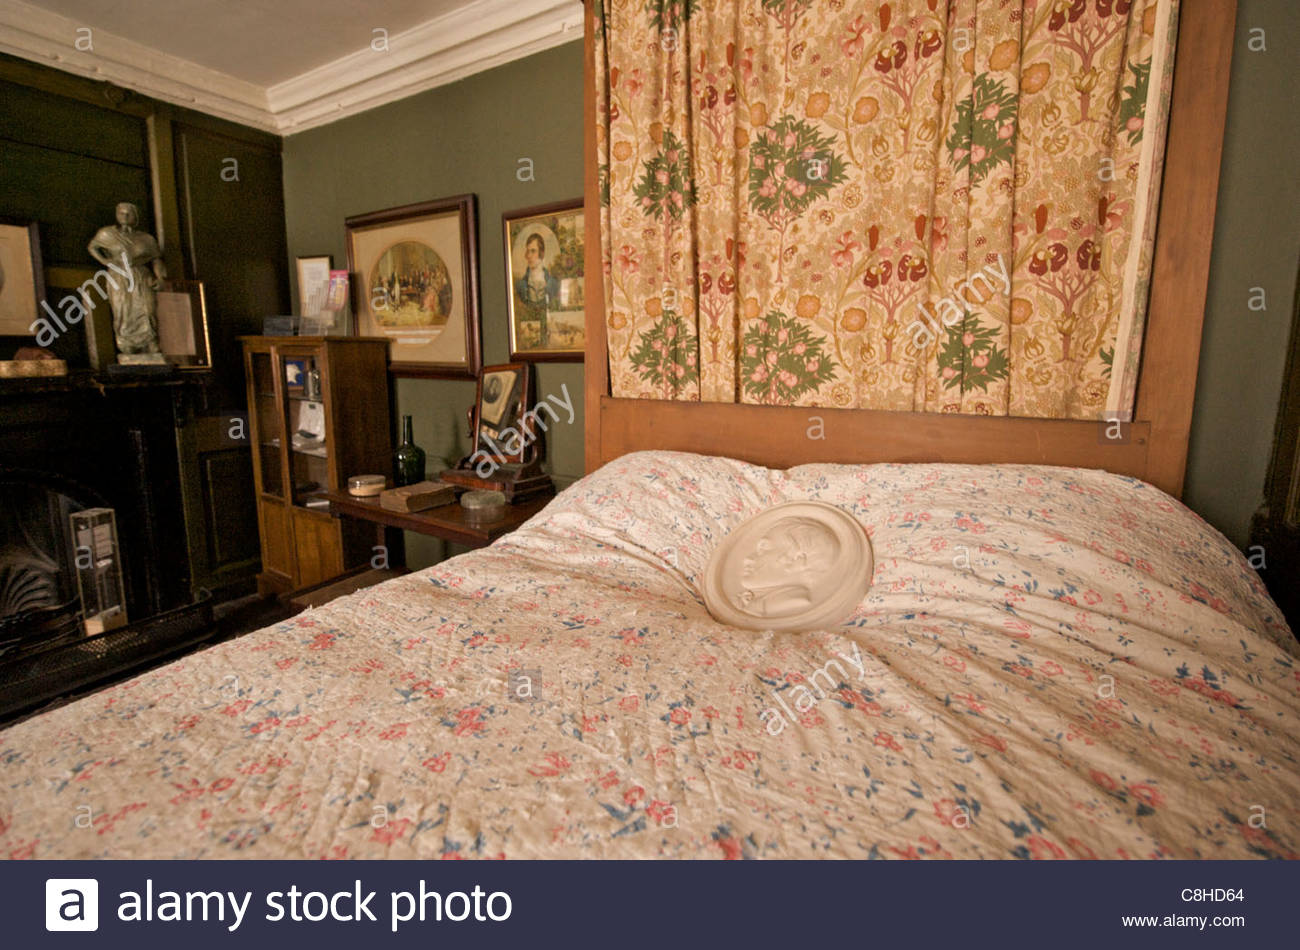 The bedroom of poet Robert Burns, preserved at the Globe Inn. - Stock Image